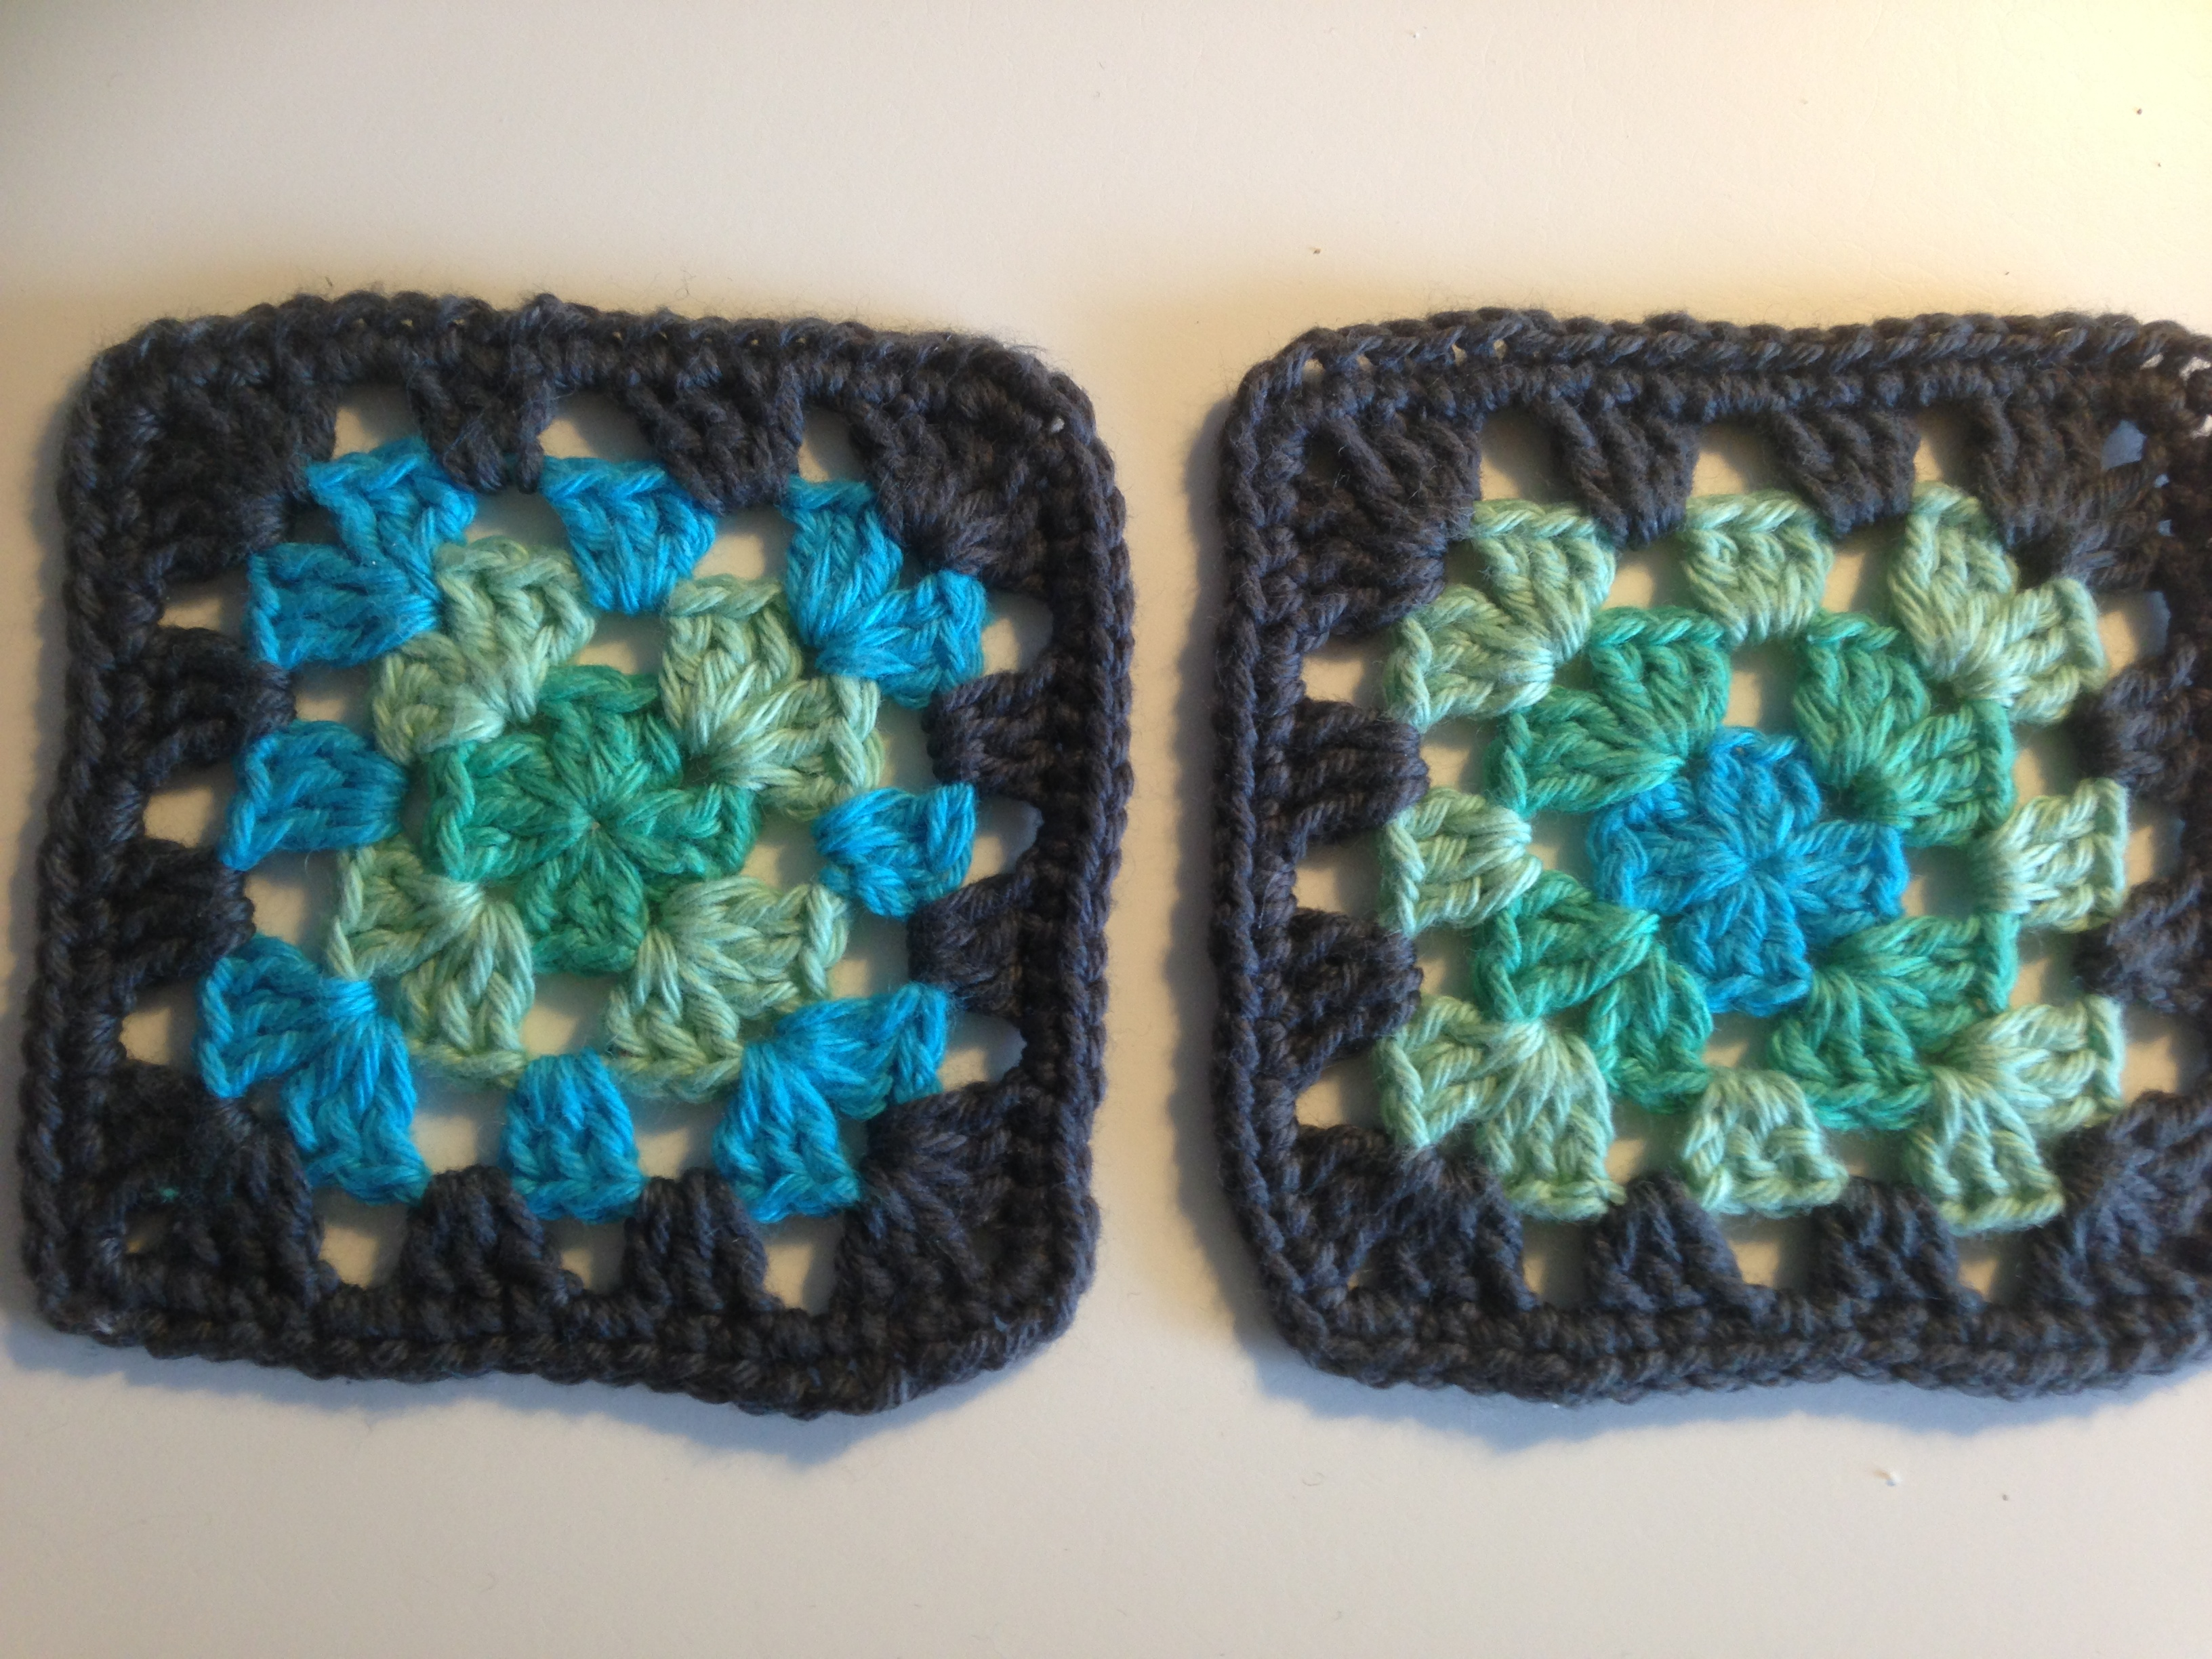 Granny Square step by step guide